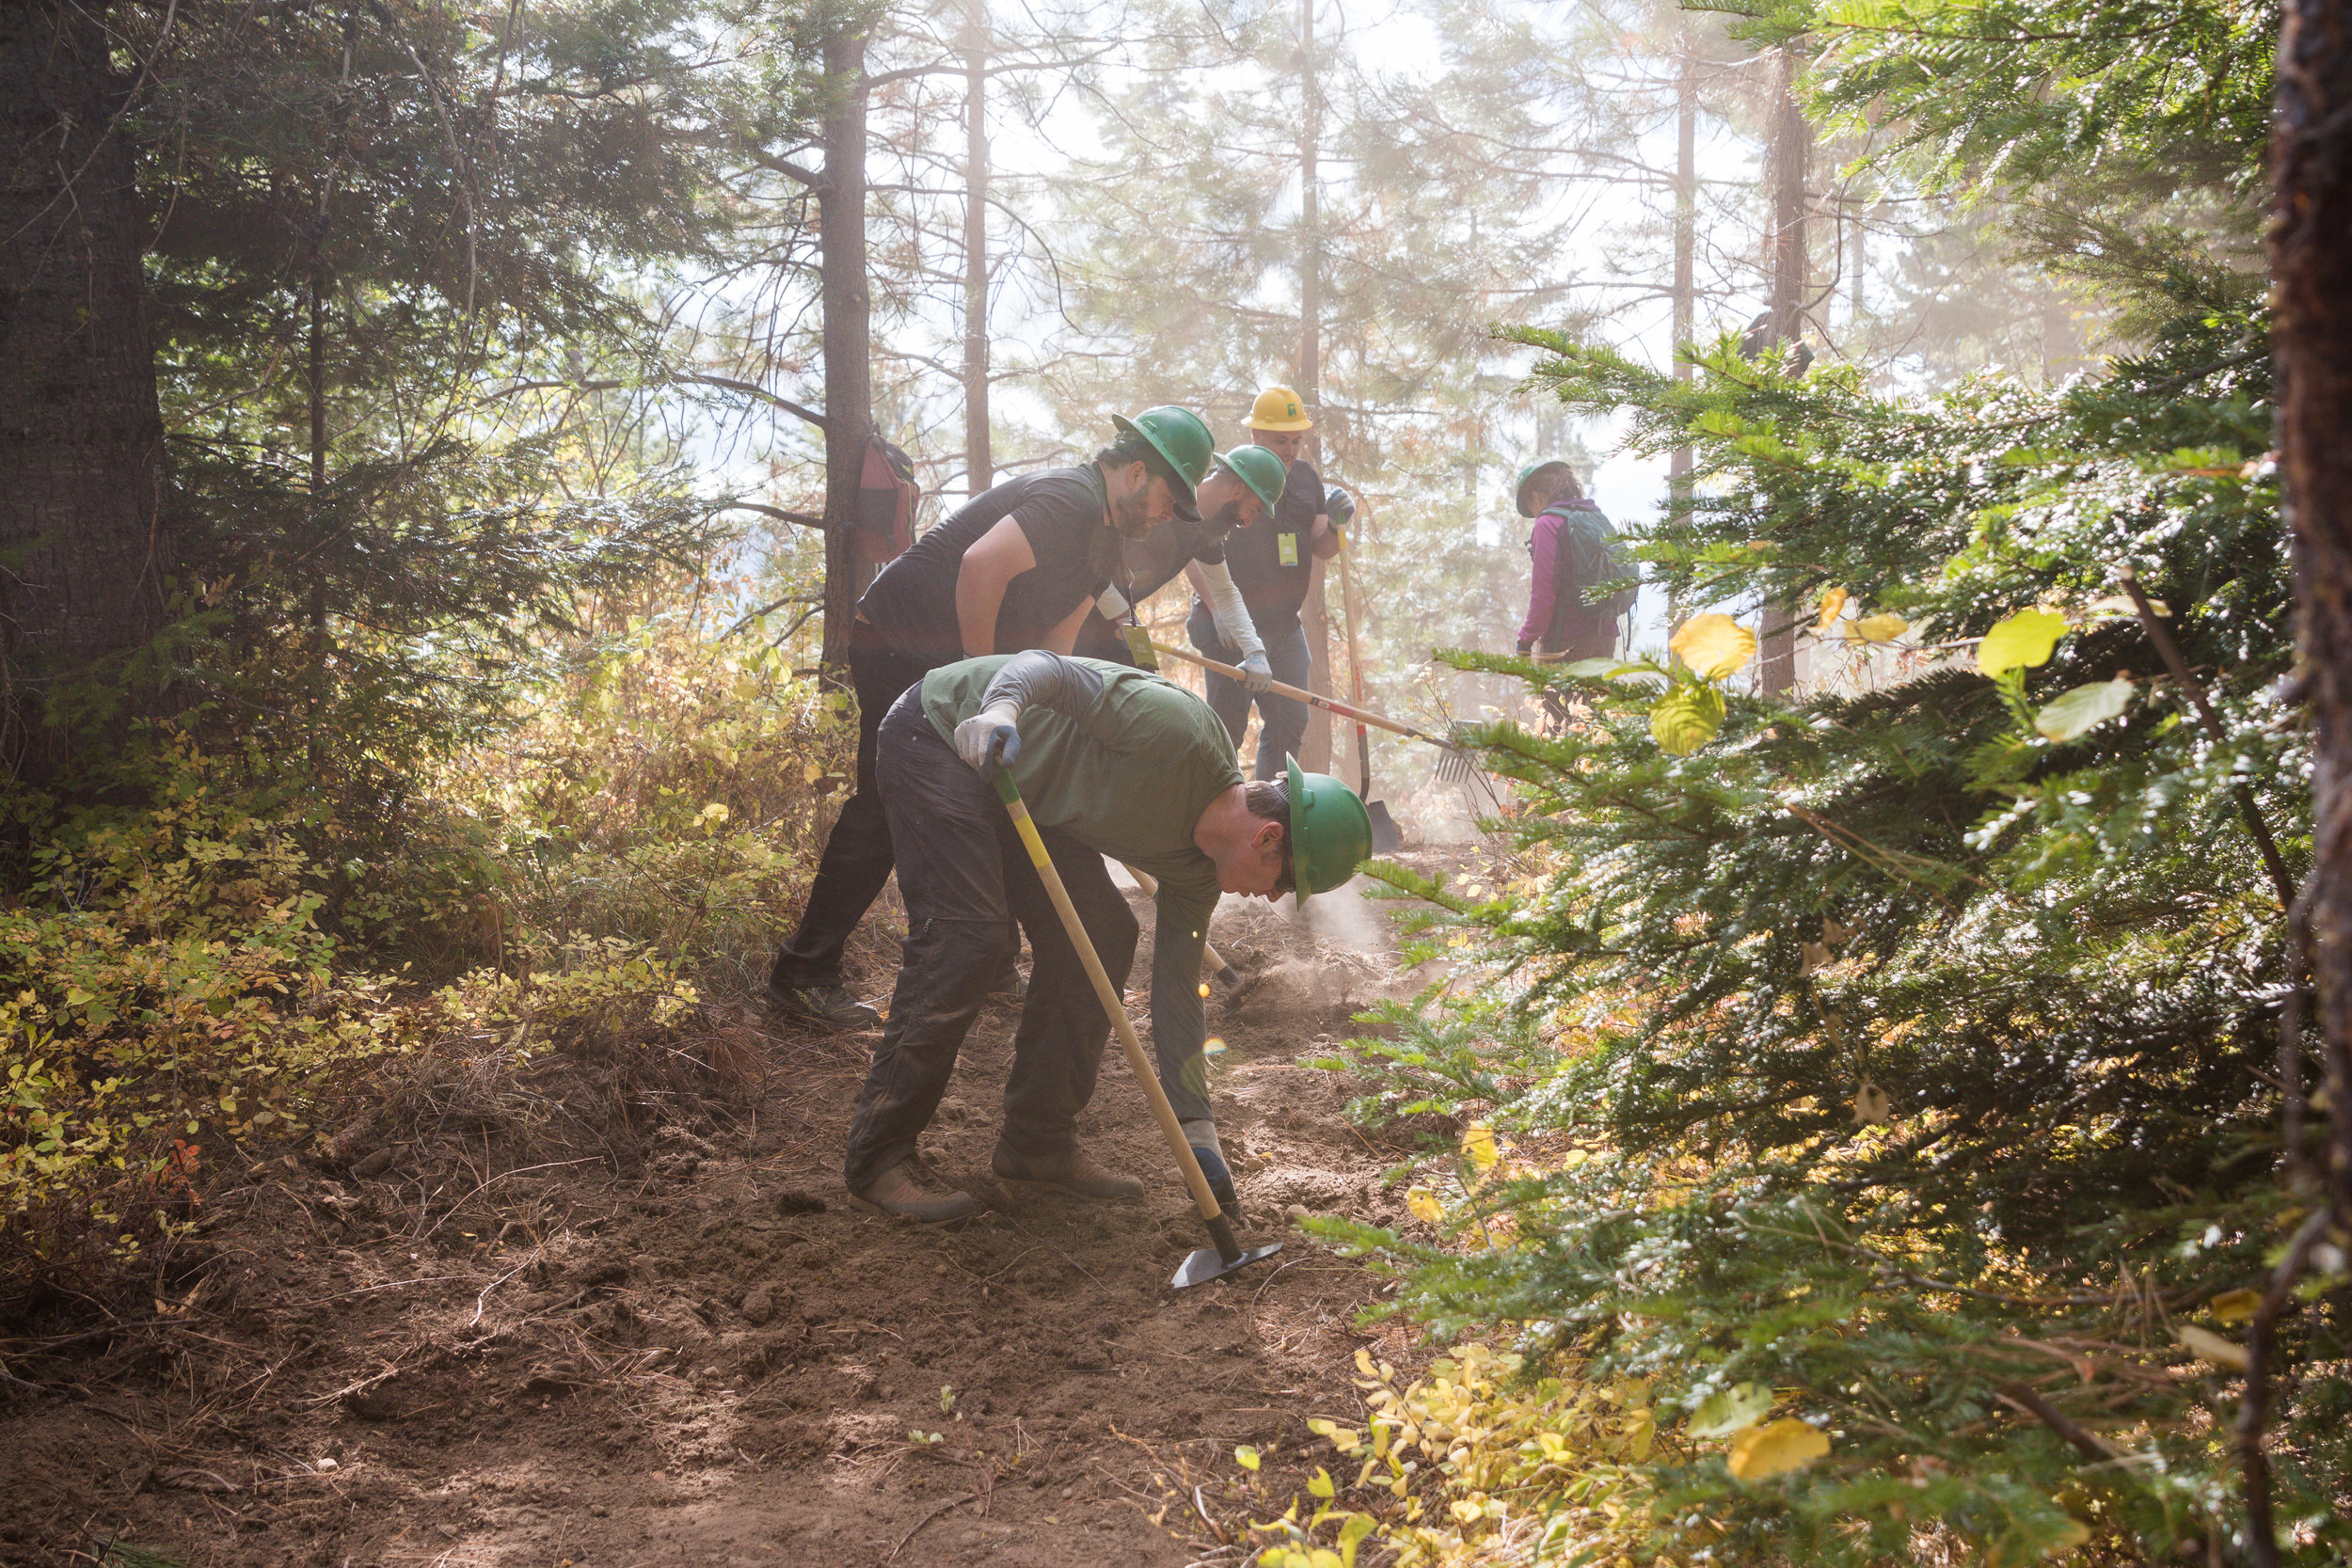 In just 2½ hours, we built 2 miles of new trail on Roslyn Ridge! These REI volunteers sure know how to get things done! Photo © Leslie Carvitto